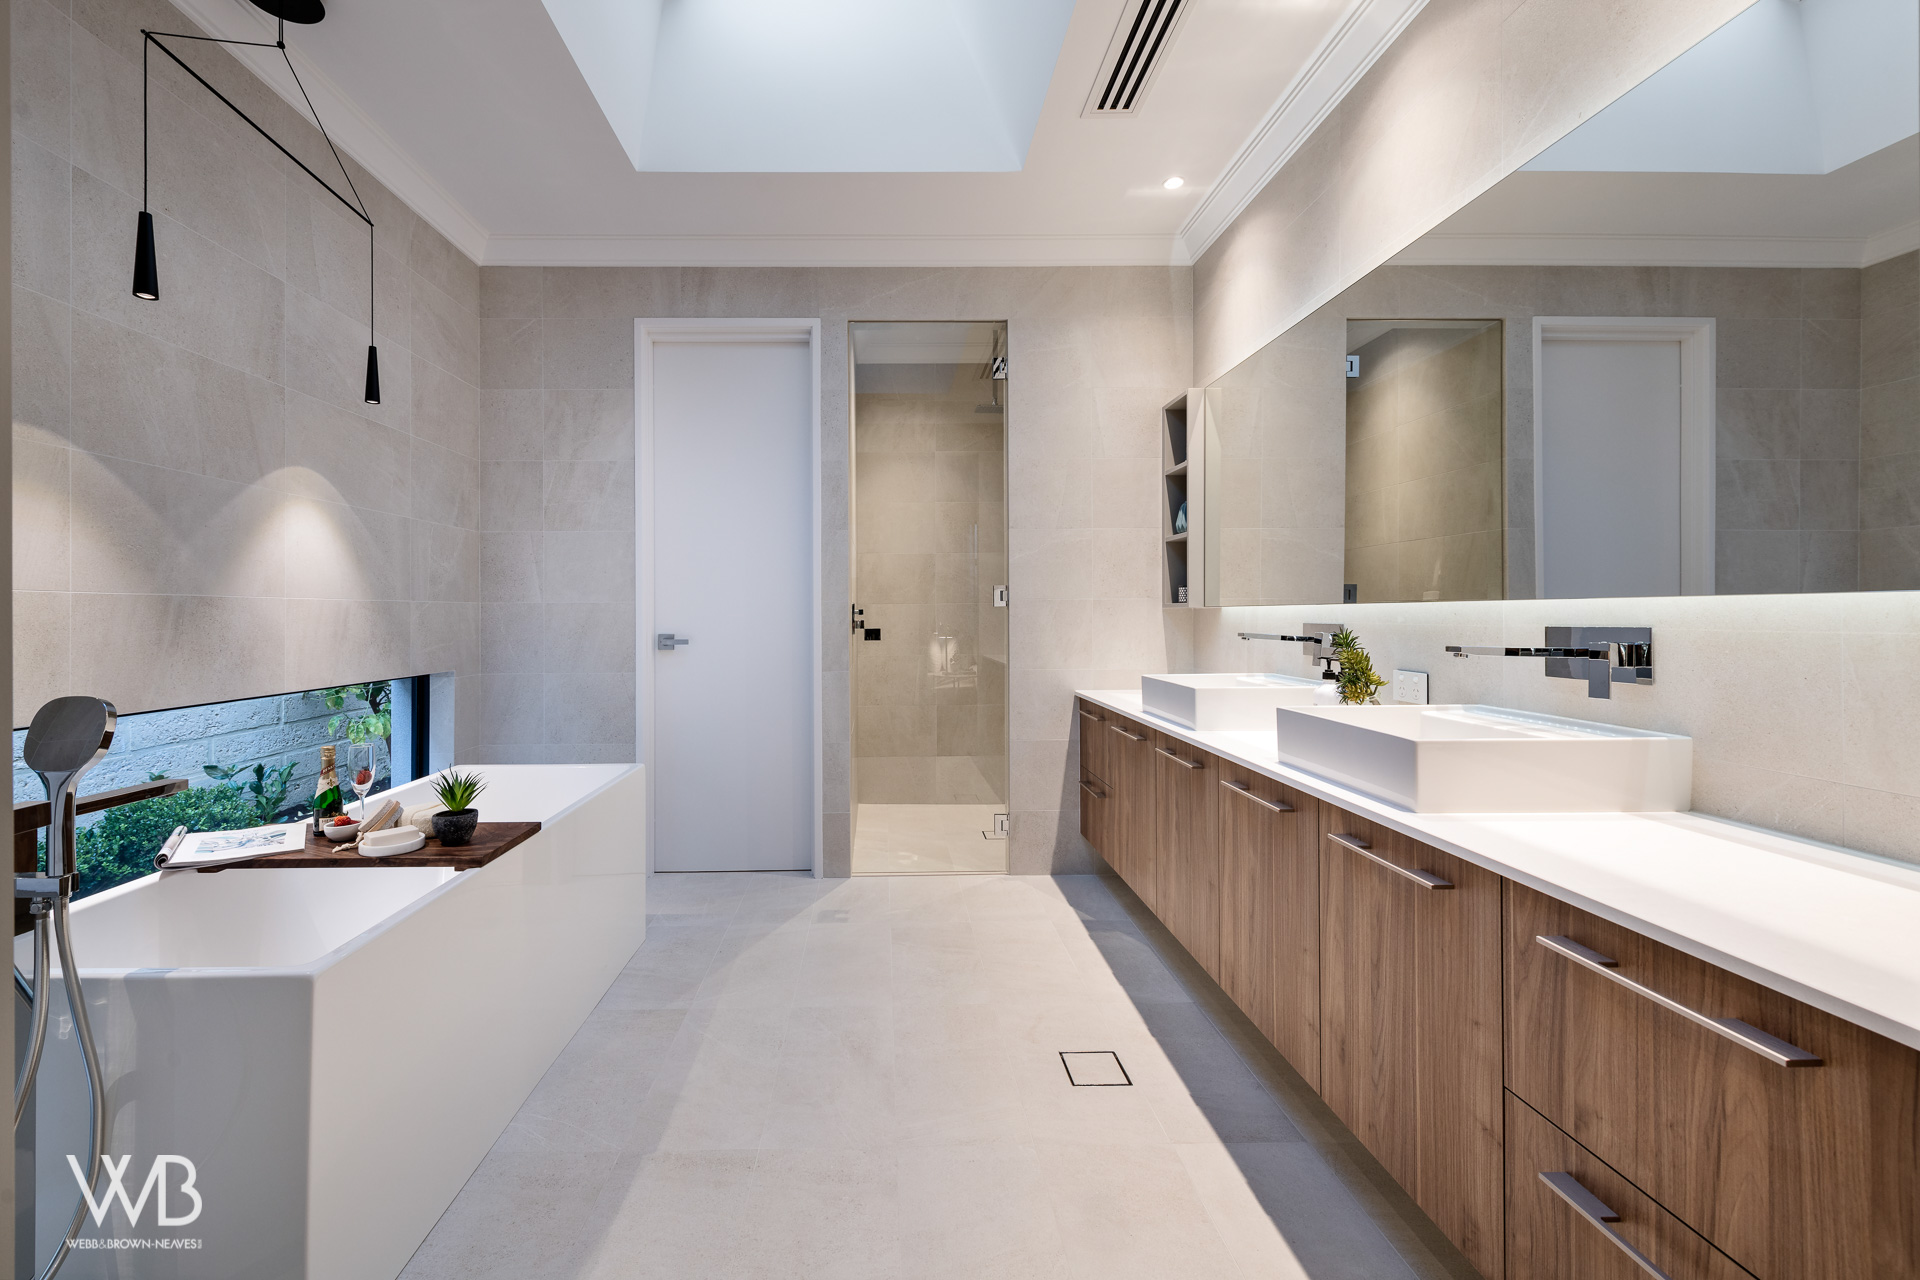 Bathroom designed by Jess O'Shea Designs for Webb and Brown-Neaves. Moda Display home. Made by The Maker Designer Kitchens. Dianella, Perth, Western Australia